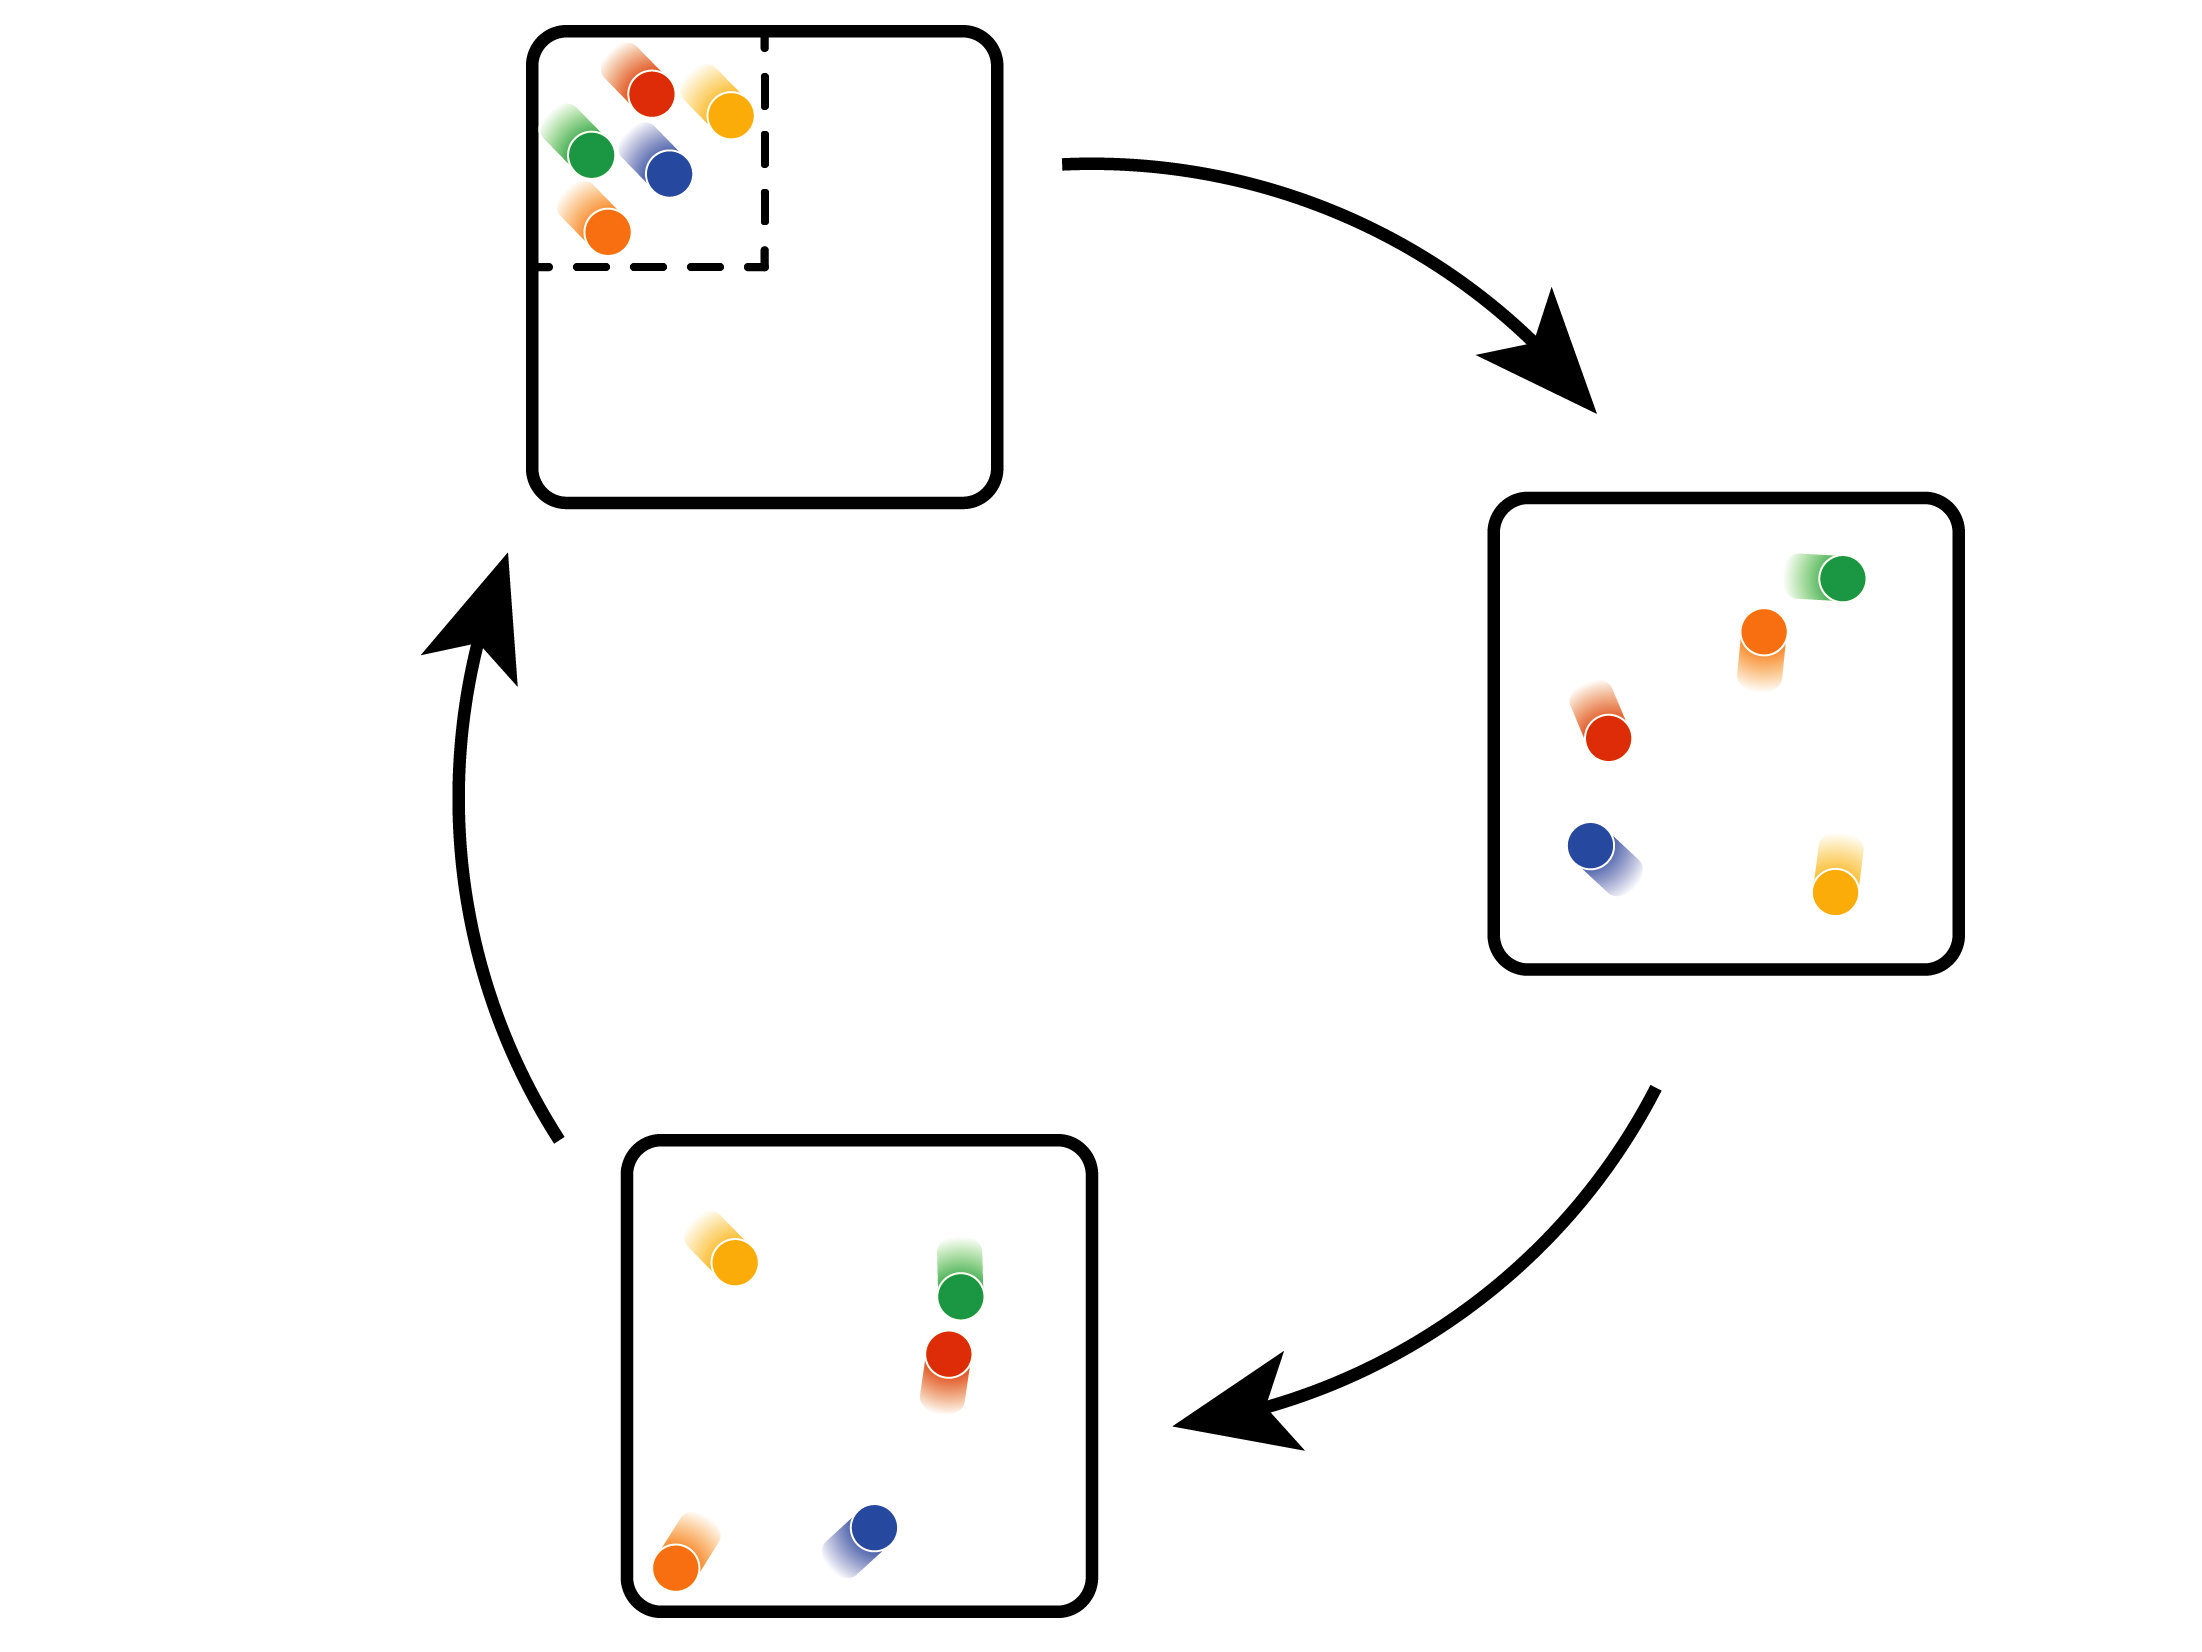 Recurrences in an isolated quantum many-body system